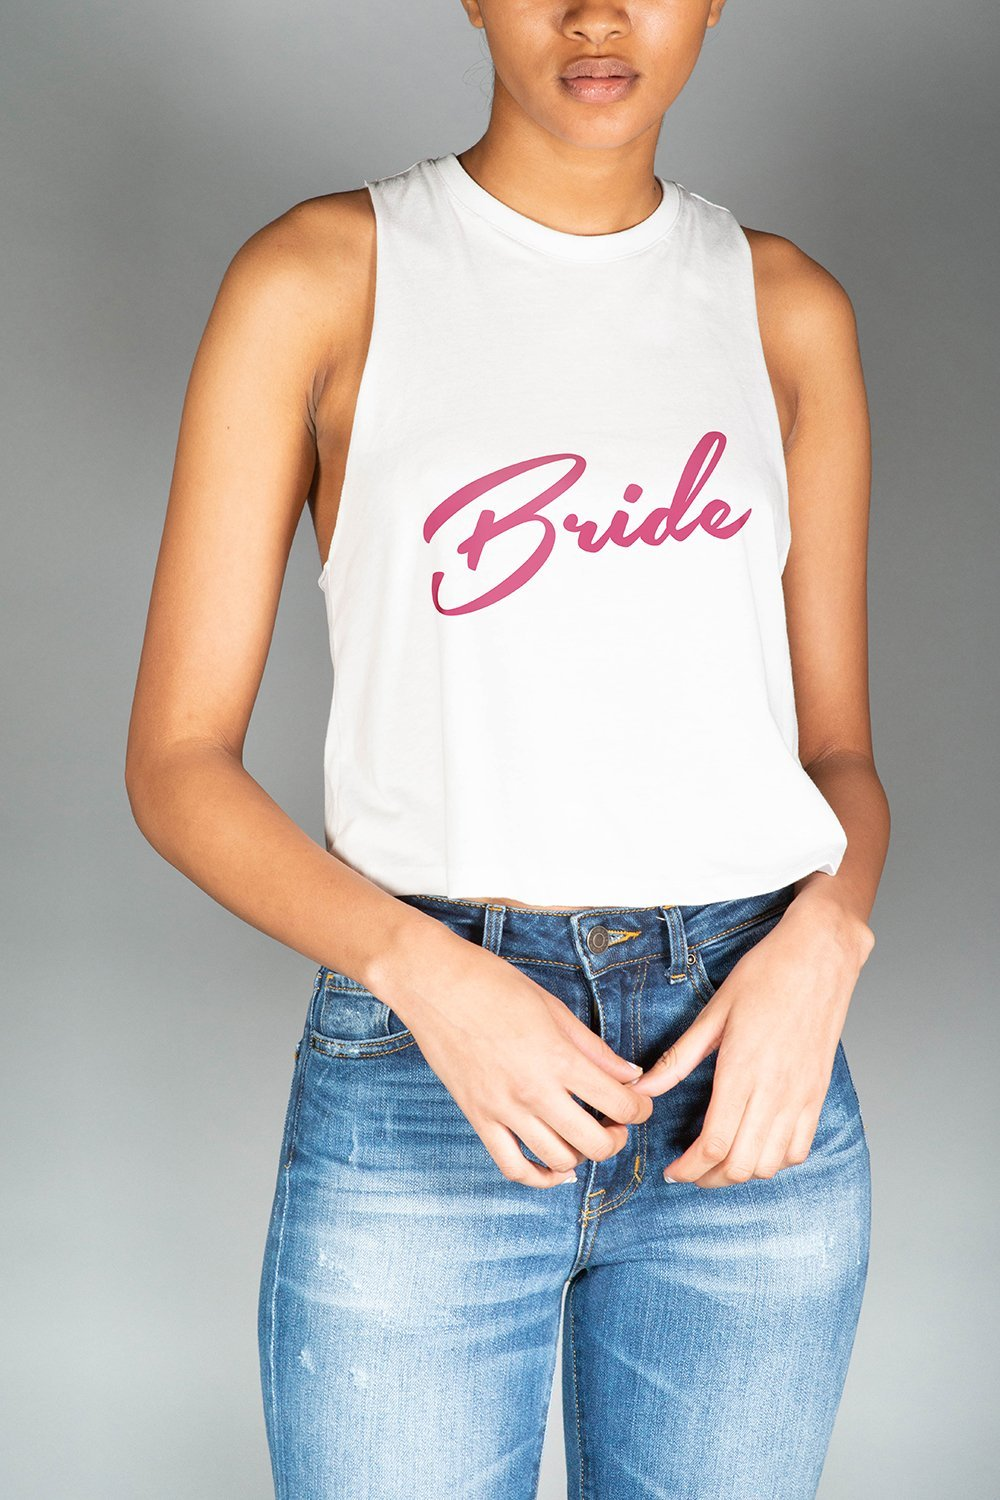 Bride Cropped Tank